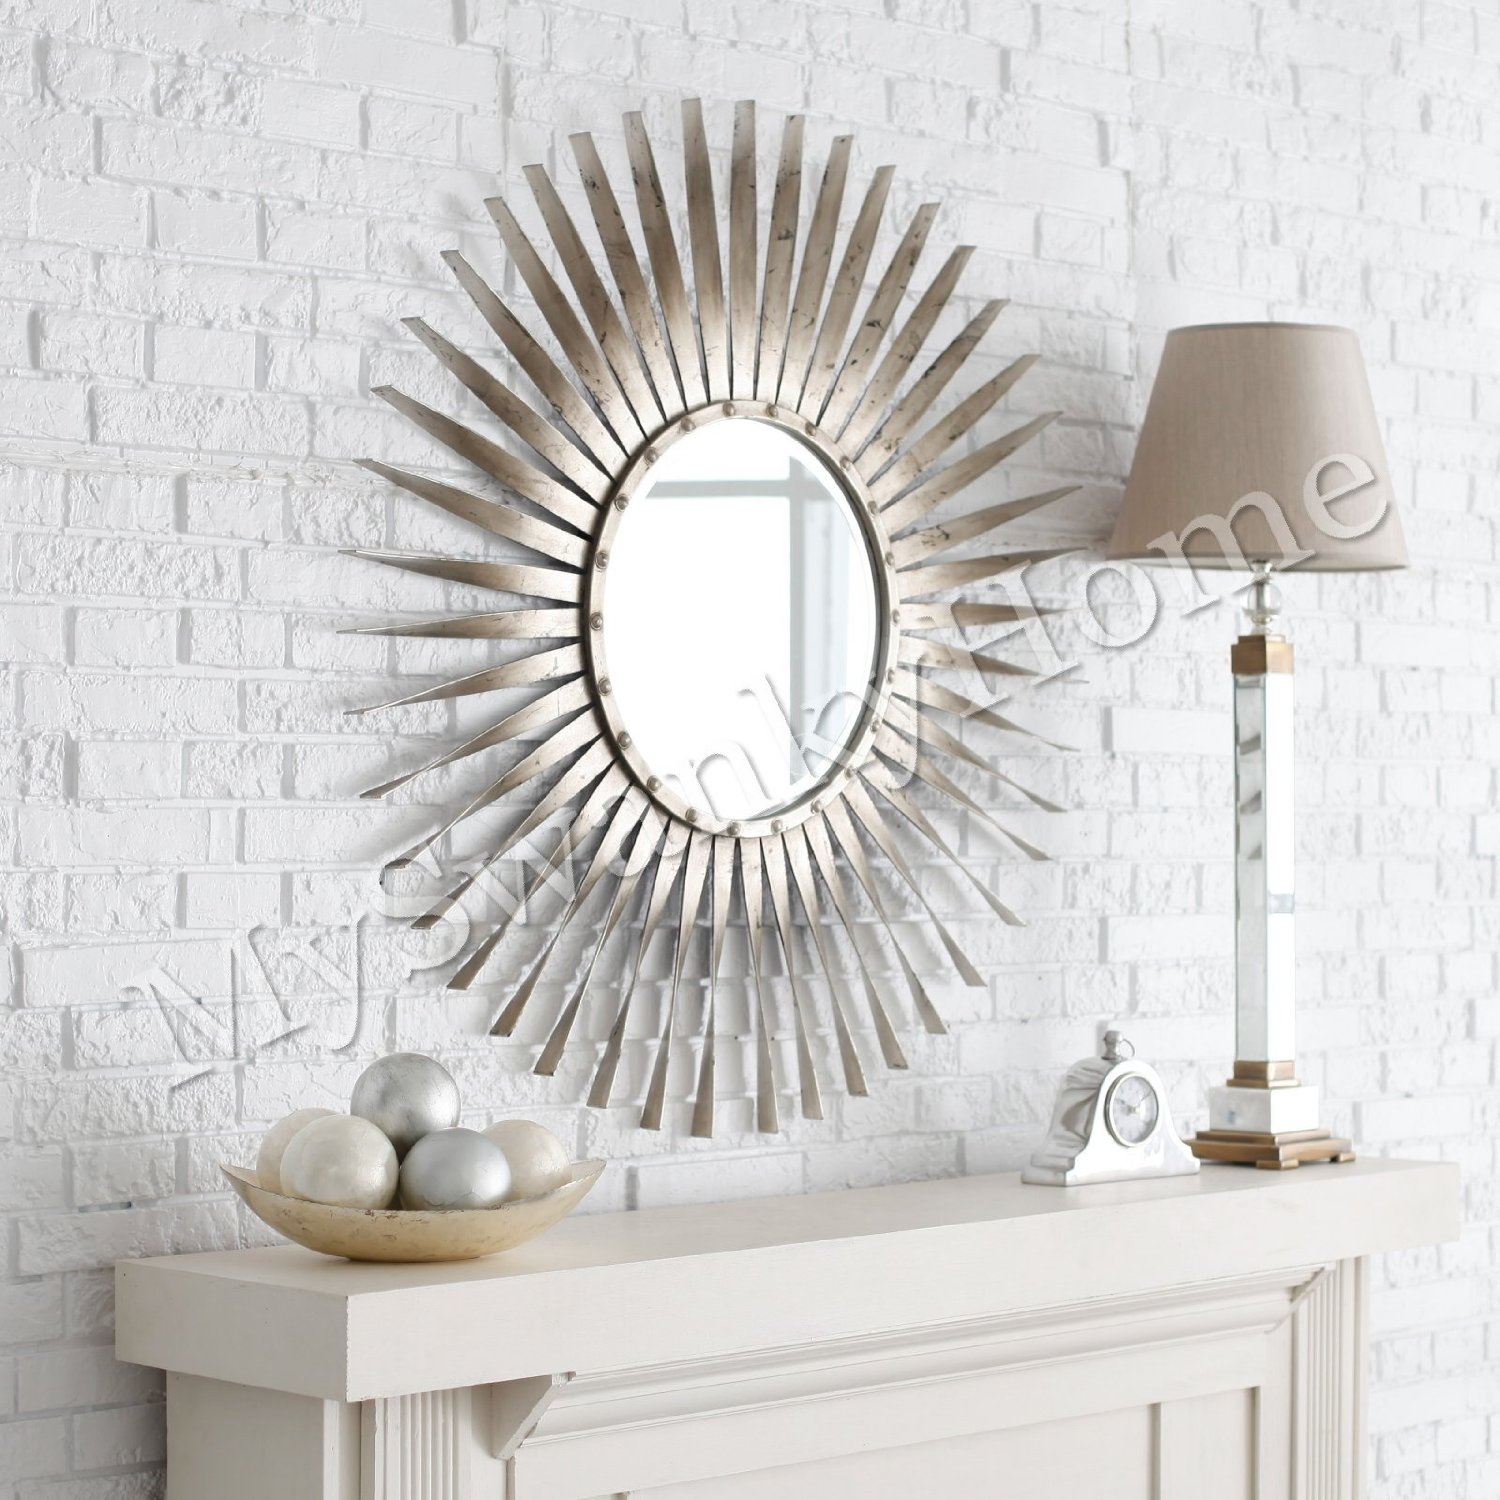 Enticing sunburst mirrors with rustic table and night lap combined plus luxury wall